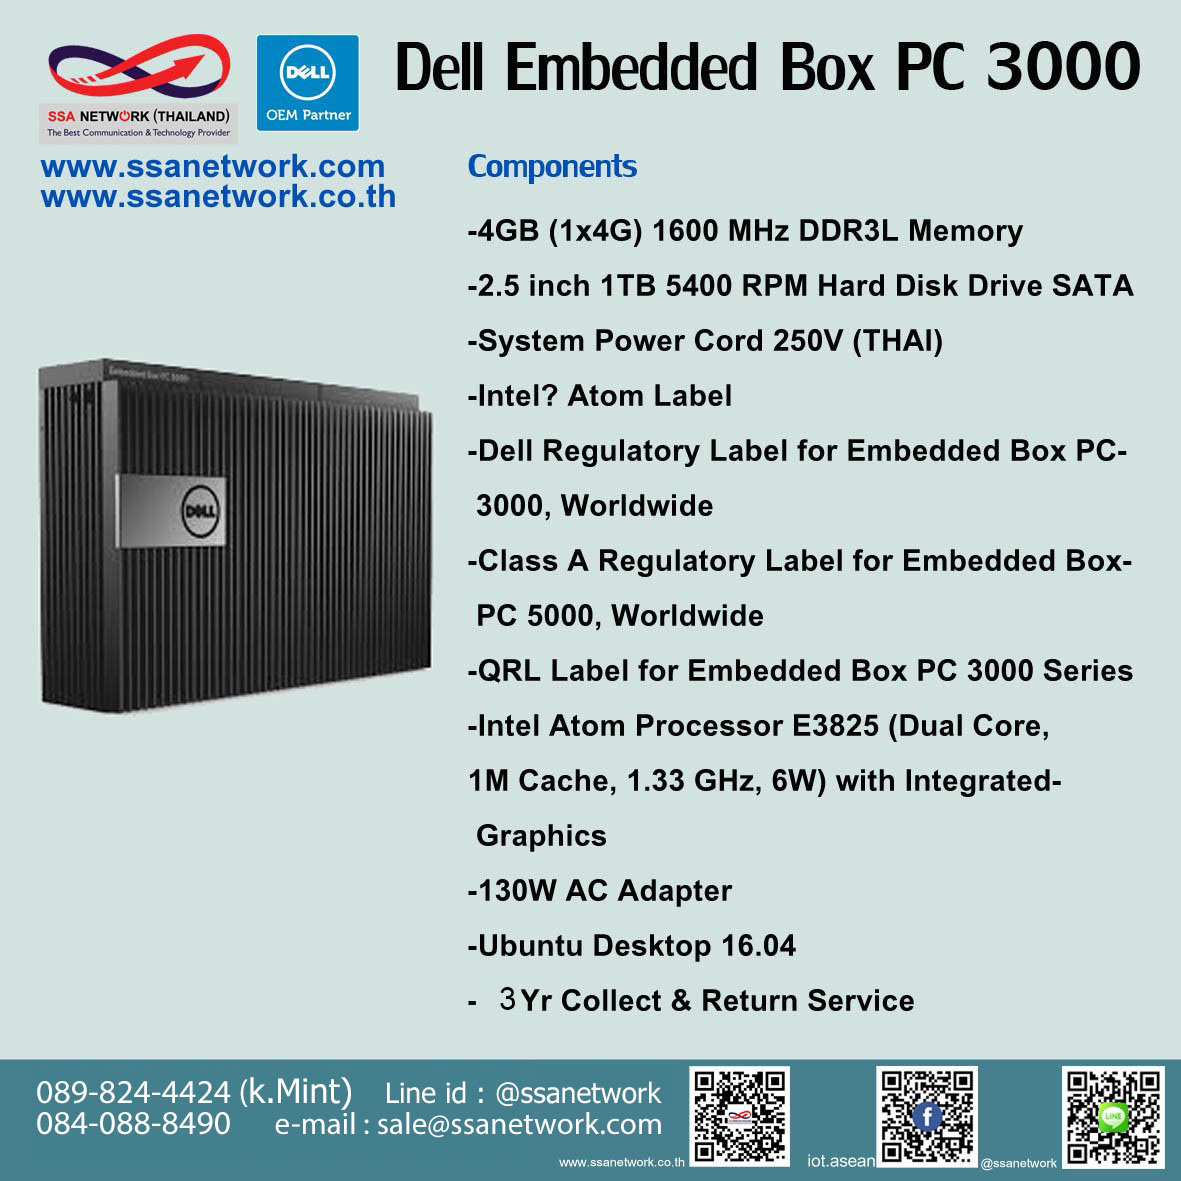 4-dell-embeded-box-pc-3000-ssanetwork